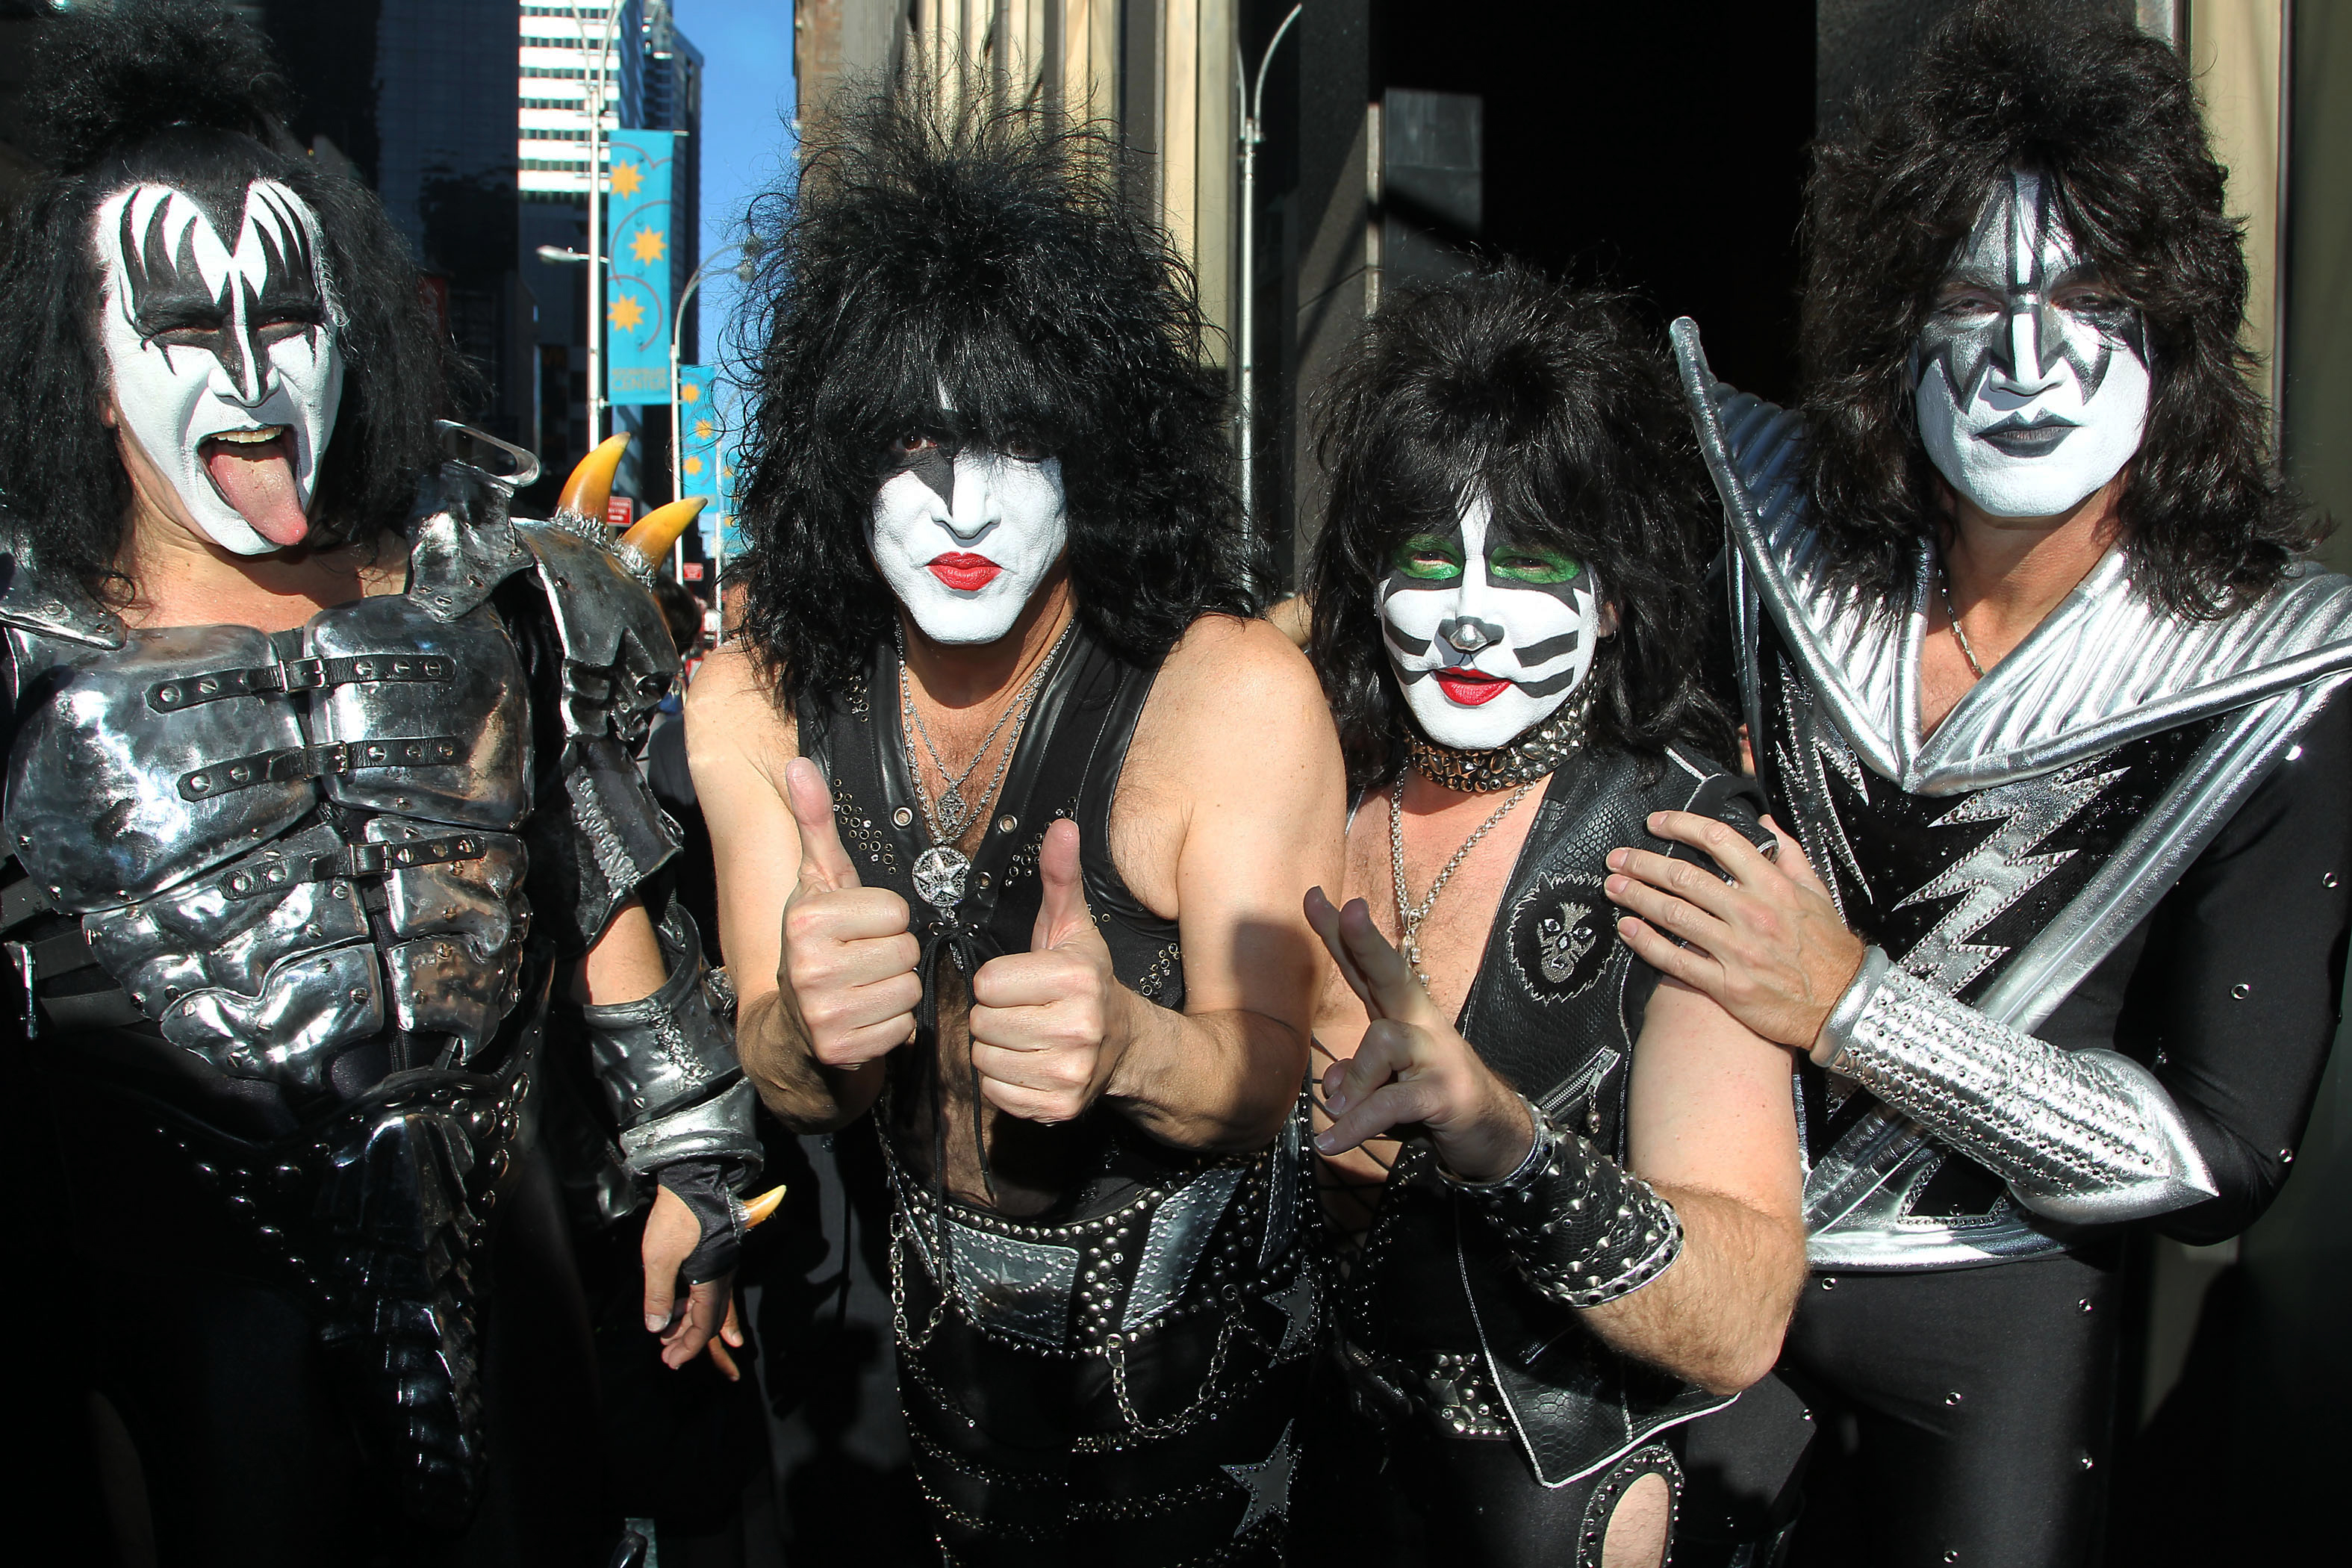 KISS concert scheduled for the Huntington Center - The Blade